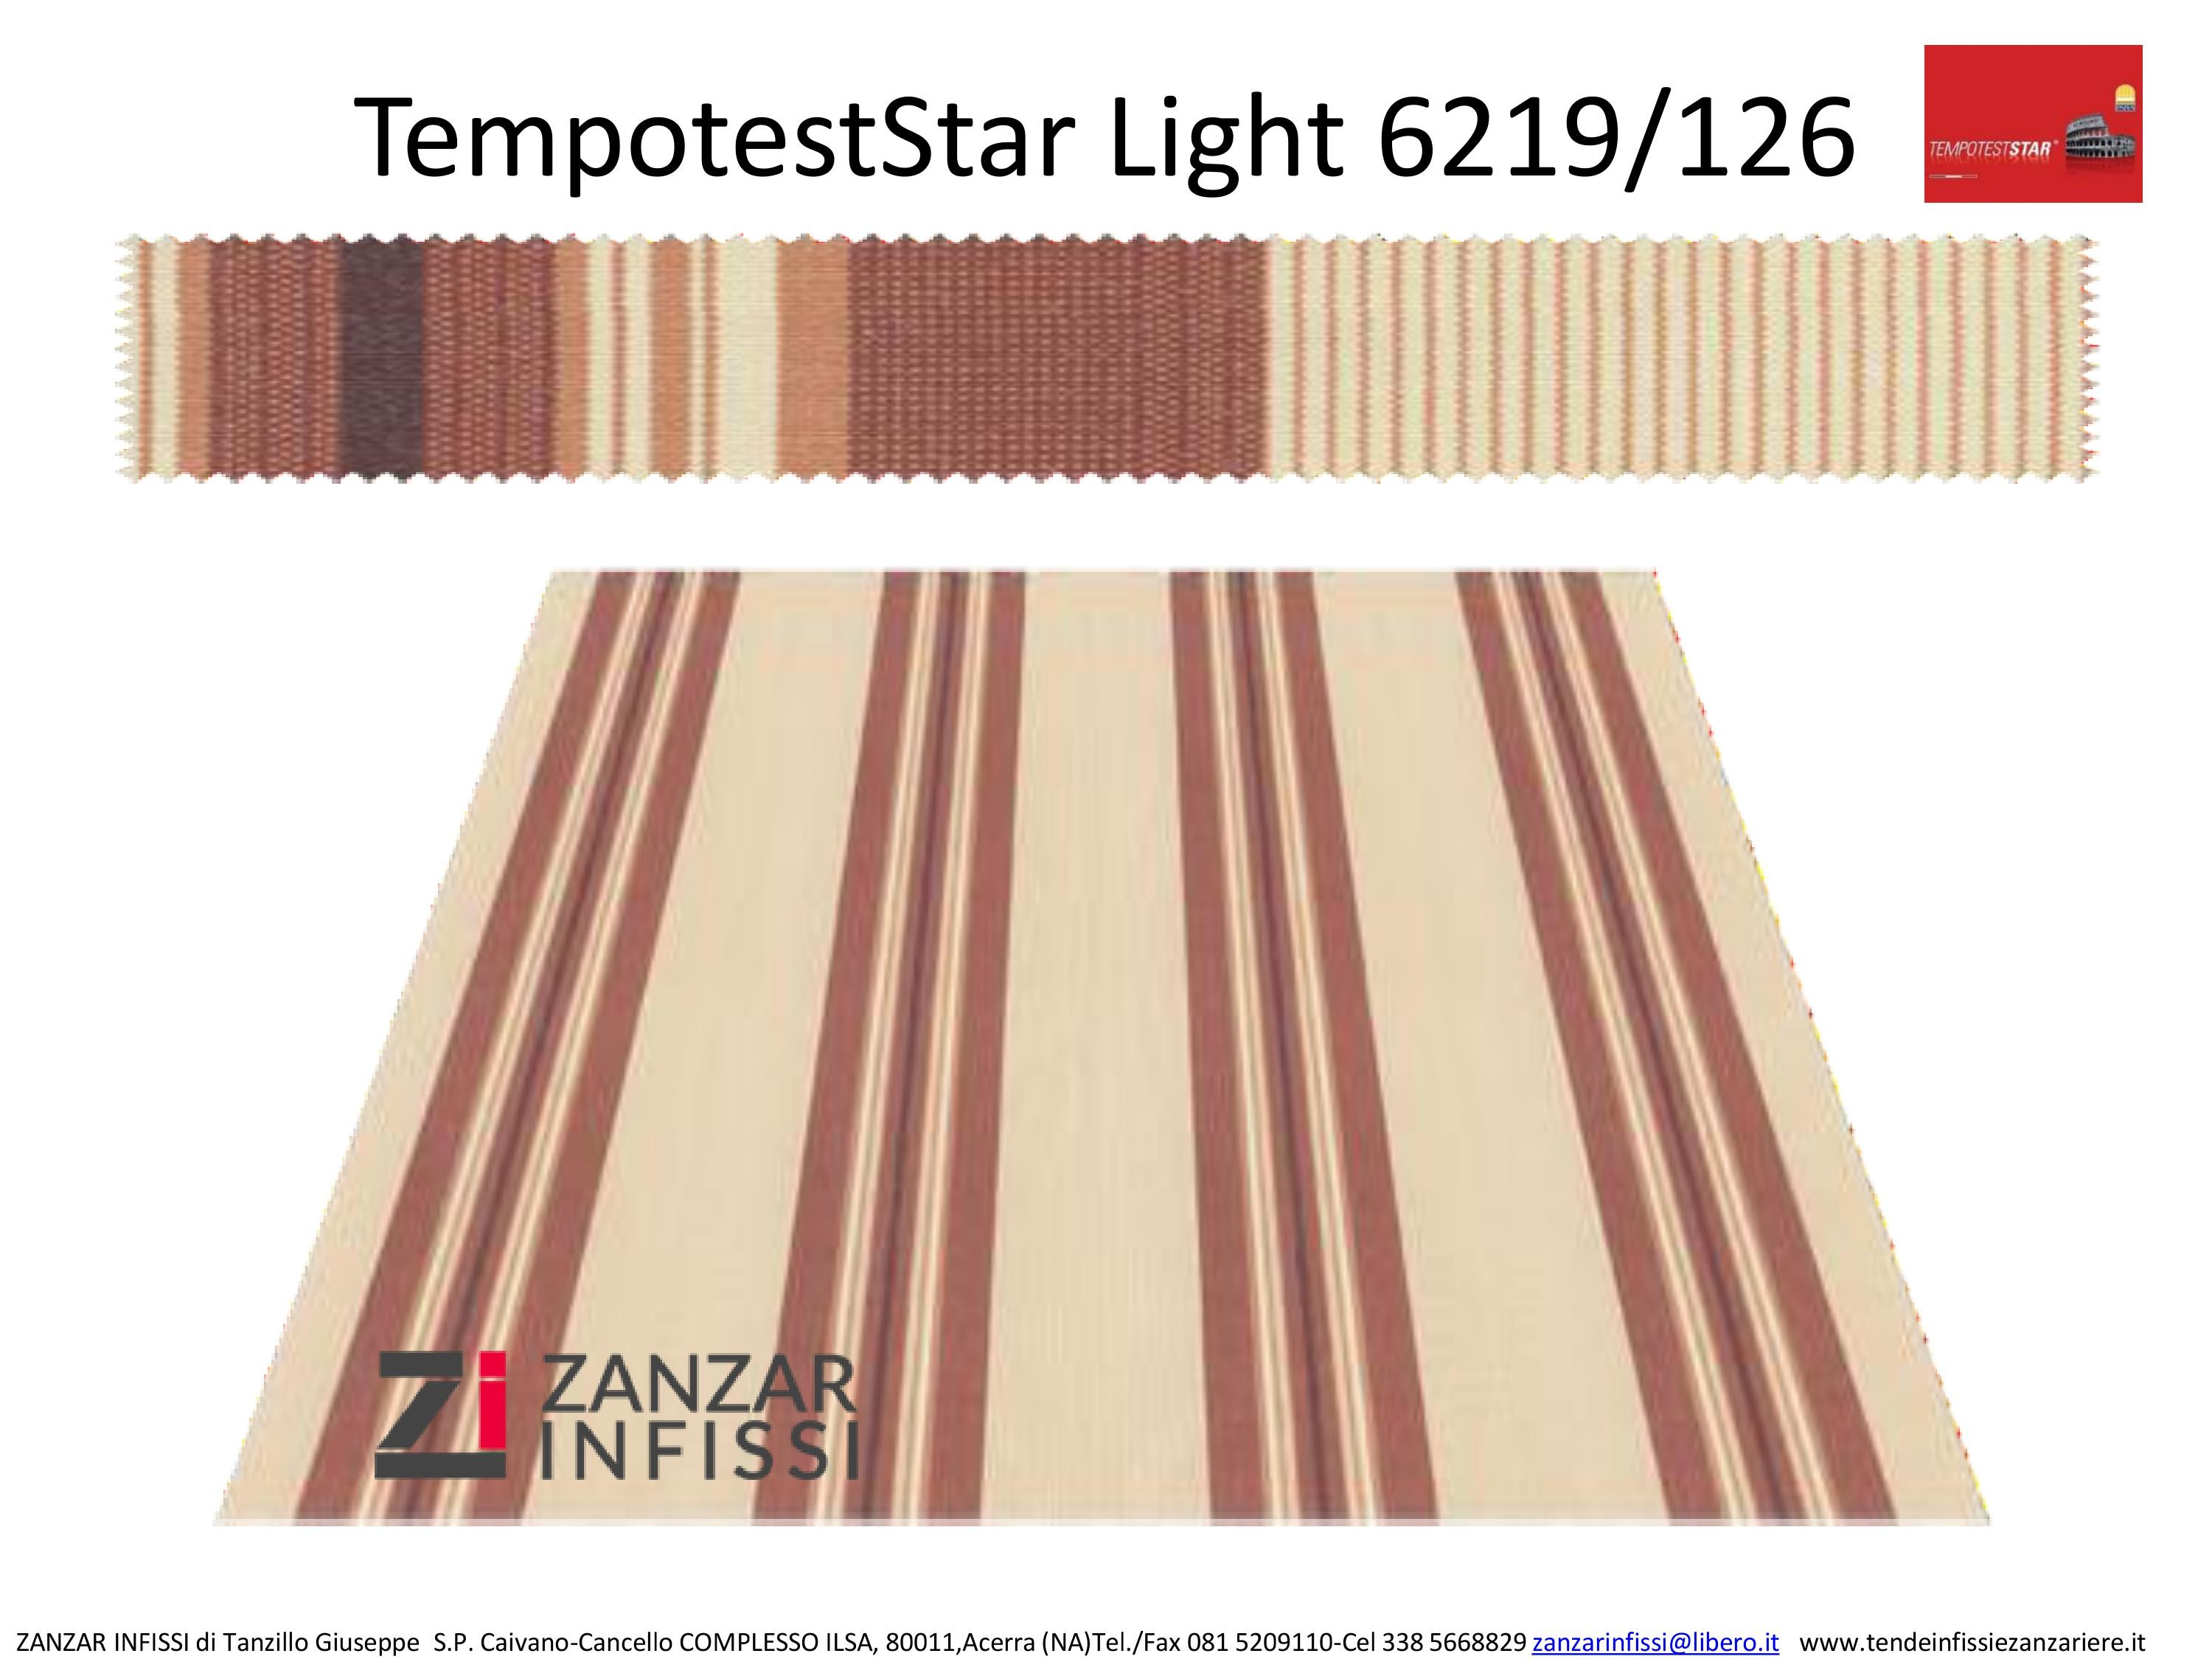 Tempotest star light 6219/126